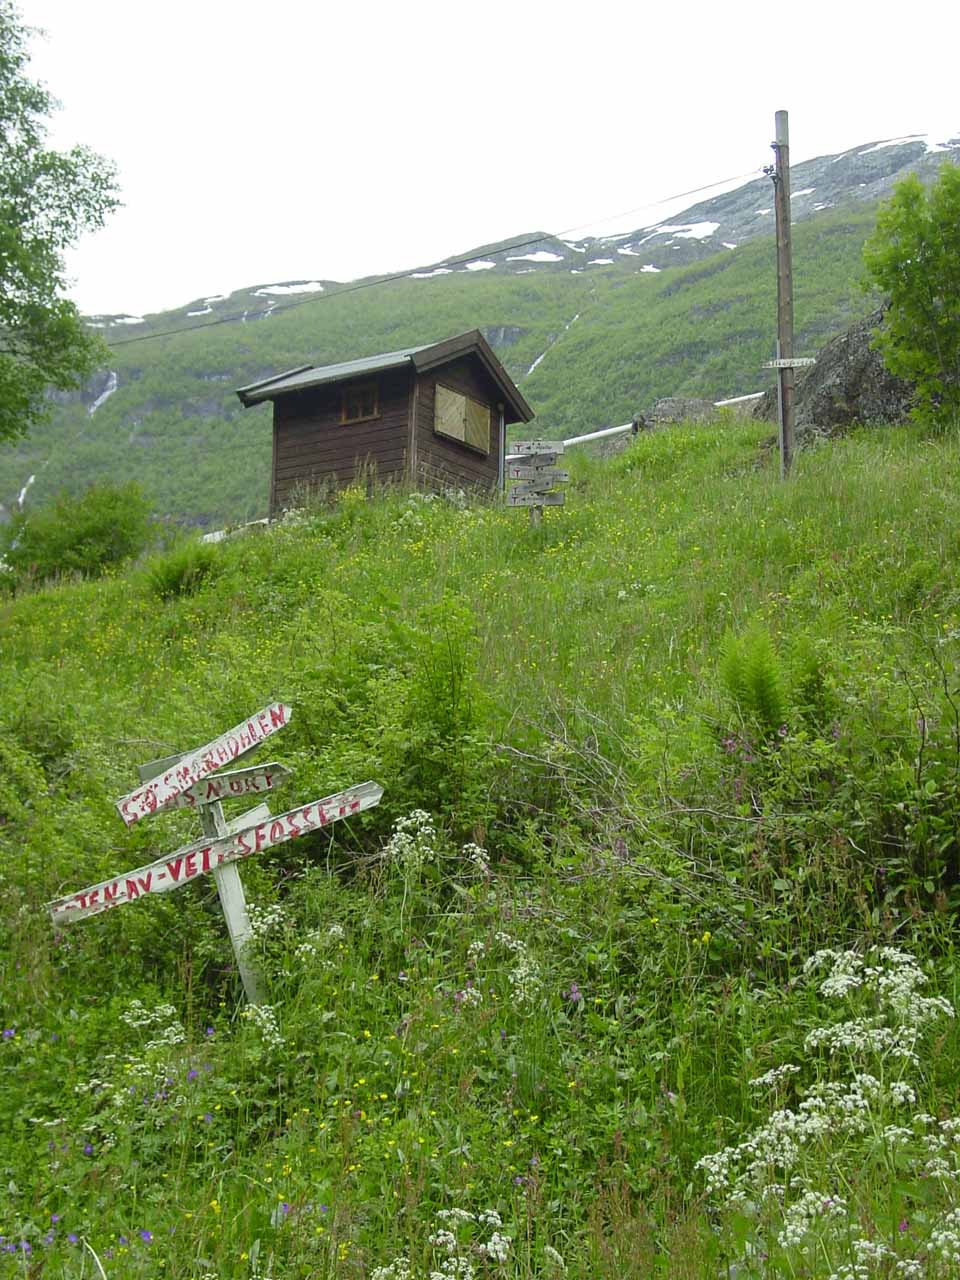 Arrowed signs pointing the way to continue to Vettisfossen